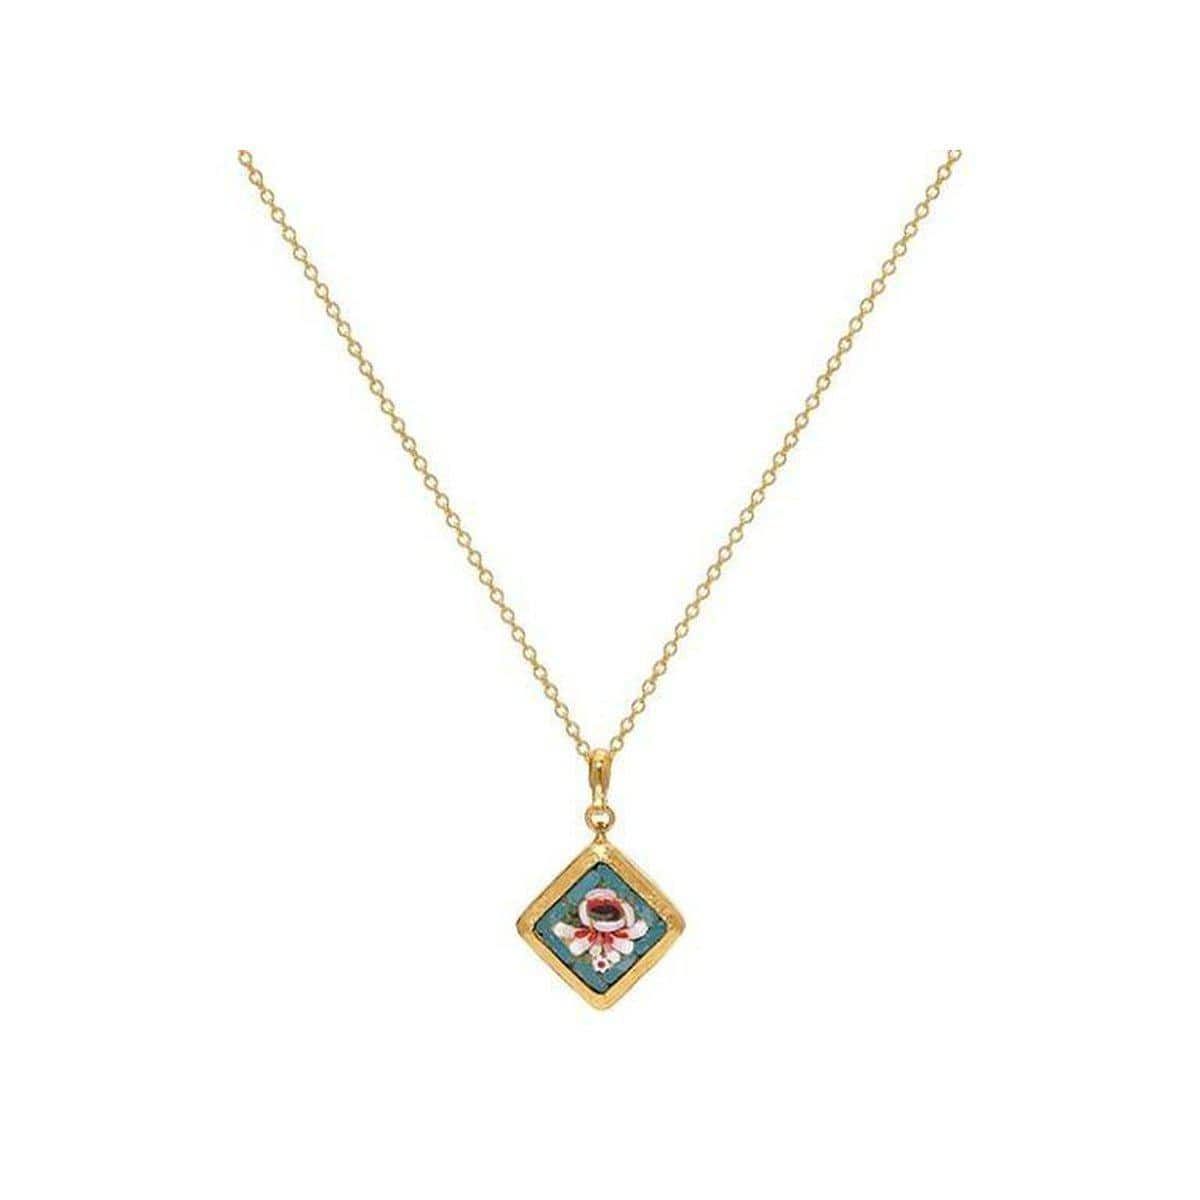 Antiquitites 24K Gold Mosaic Necklace - CHN-U23149-MZ-GURHAN-Renee Taylor Gallery